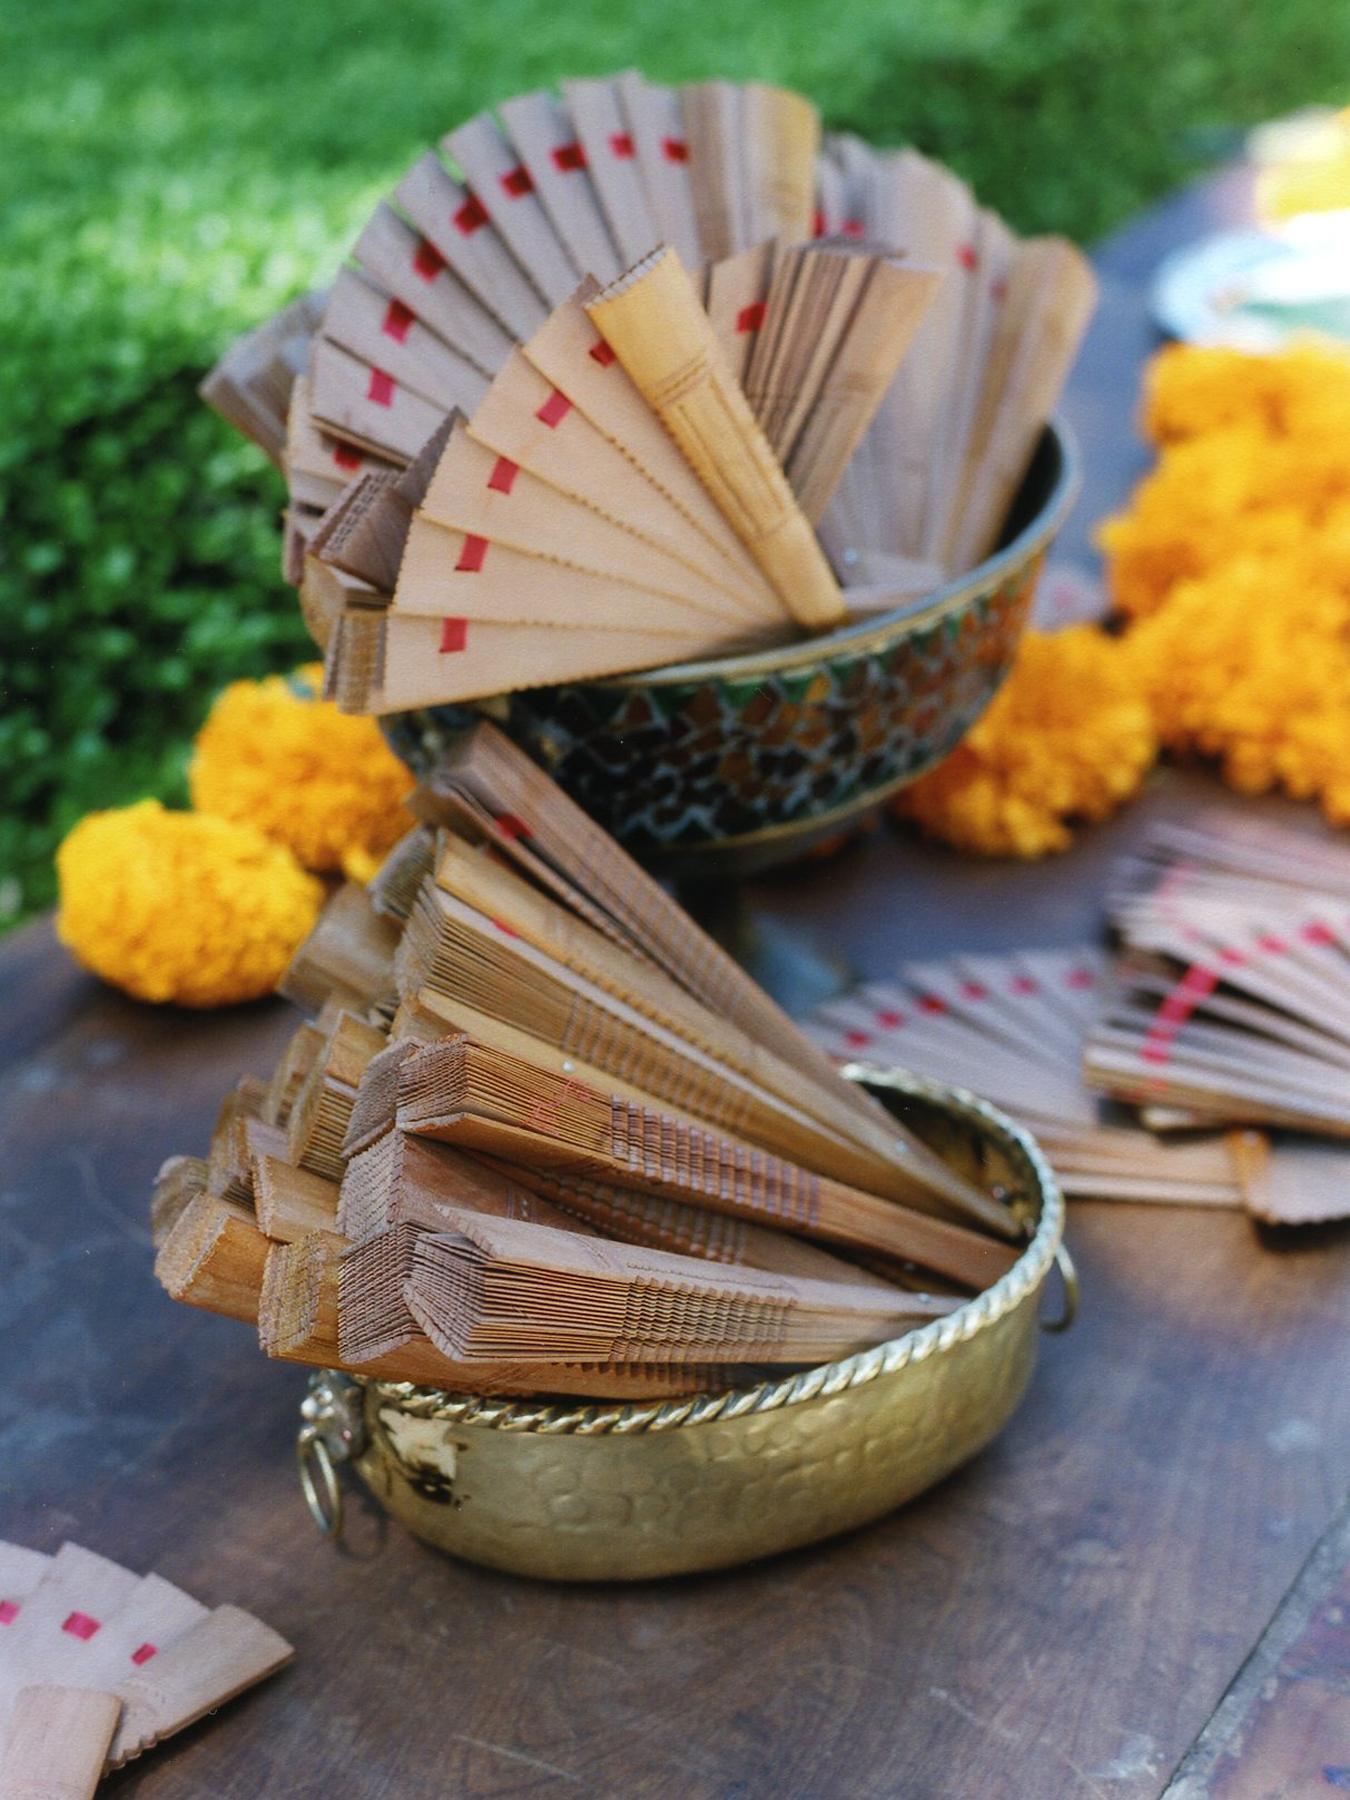 Ceremony, Flowers & Decor, Favors & Gifts, yellow, Favors, Ceremony Flowers, Flowers, Wedding, Fan, Indian, Mexican, Multicultural, Sandalwood